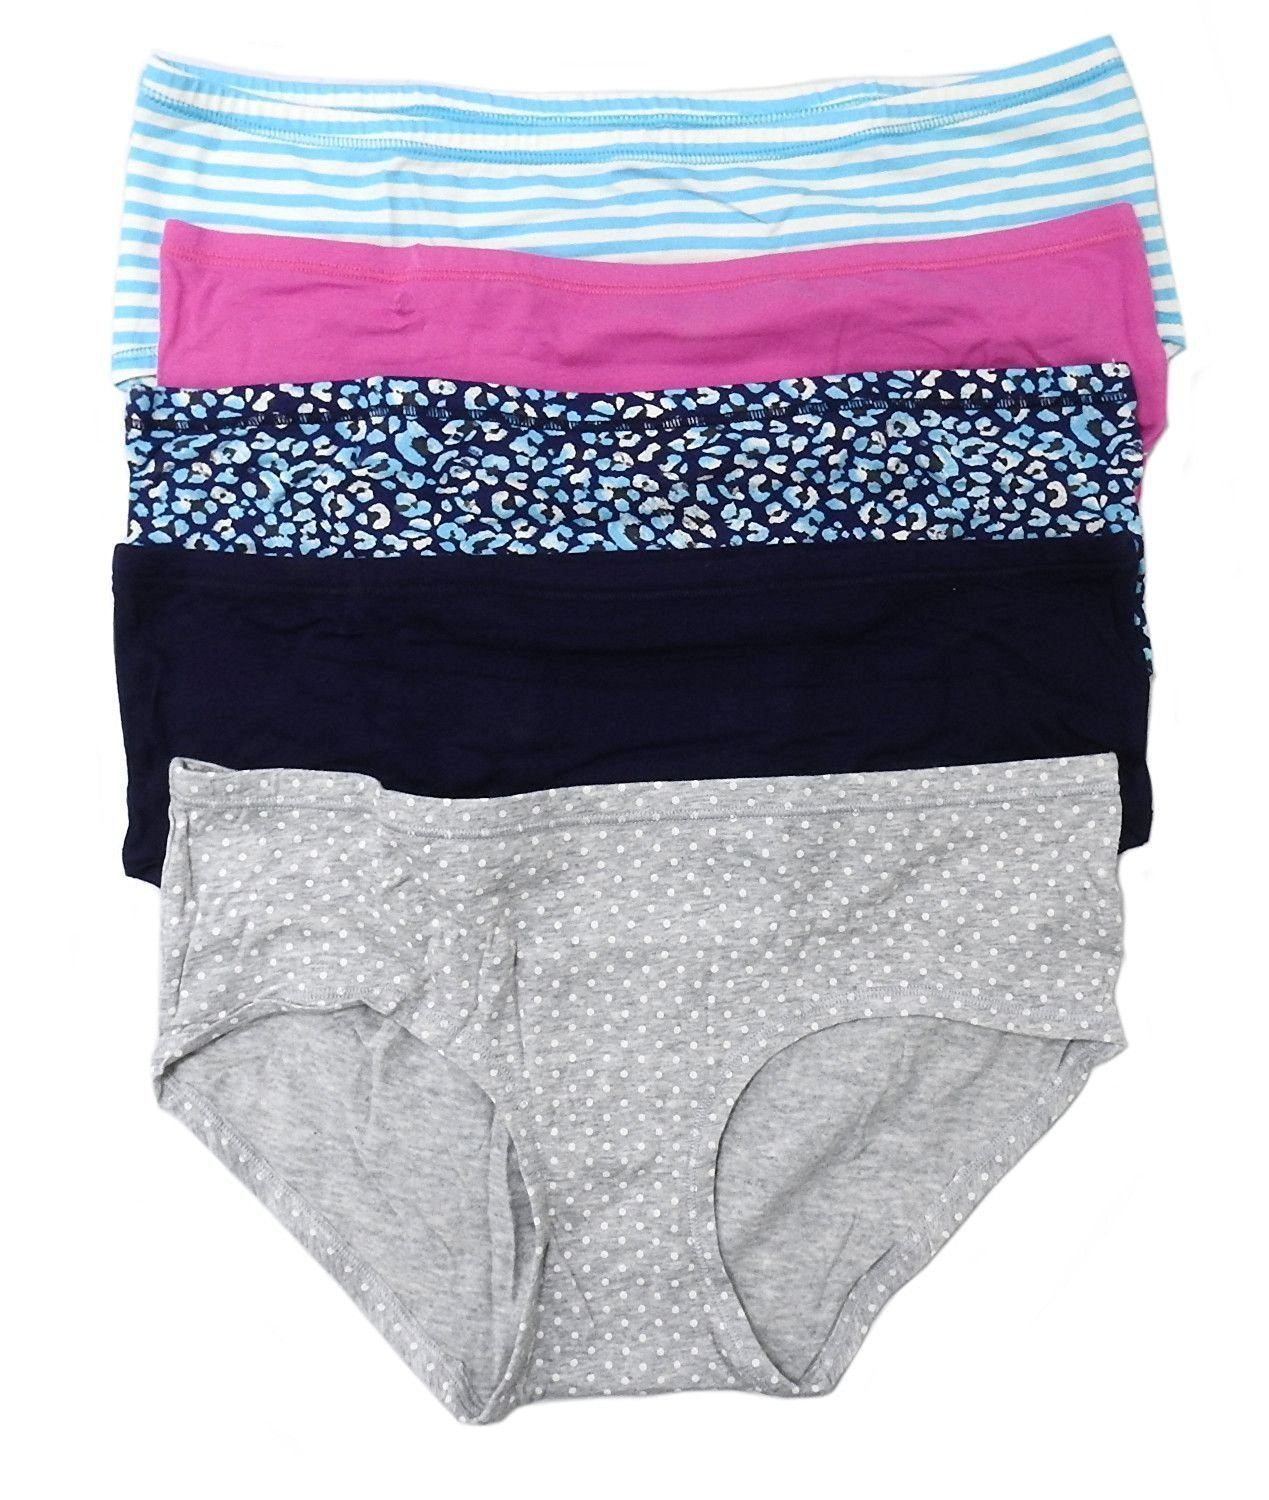 ce8fc63006d8 Carole Hochman Ladies' Cotton Hipster Panty and 50 similar items